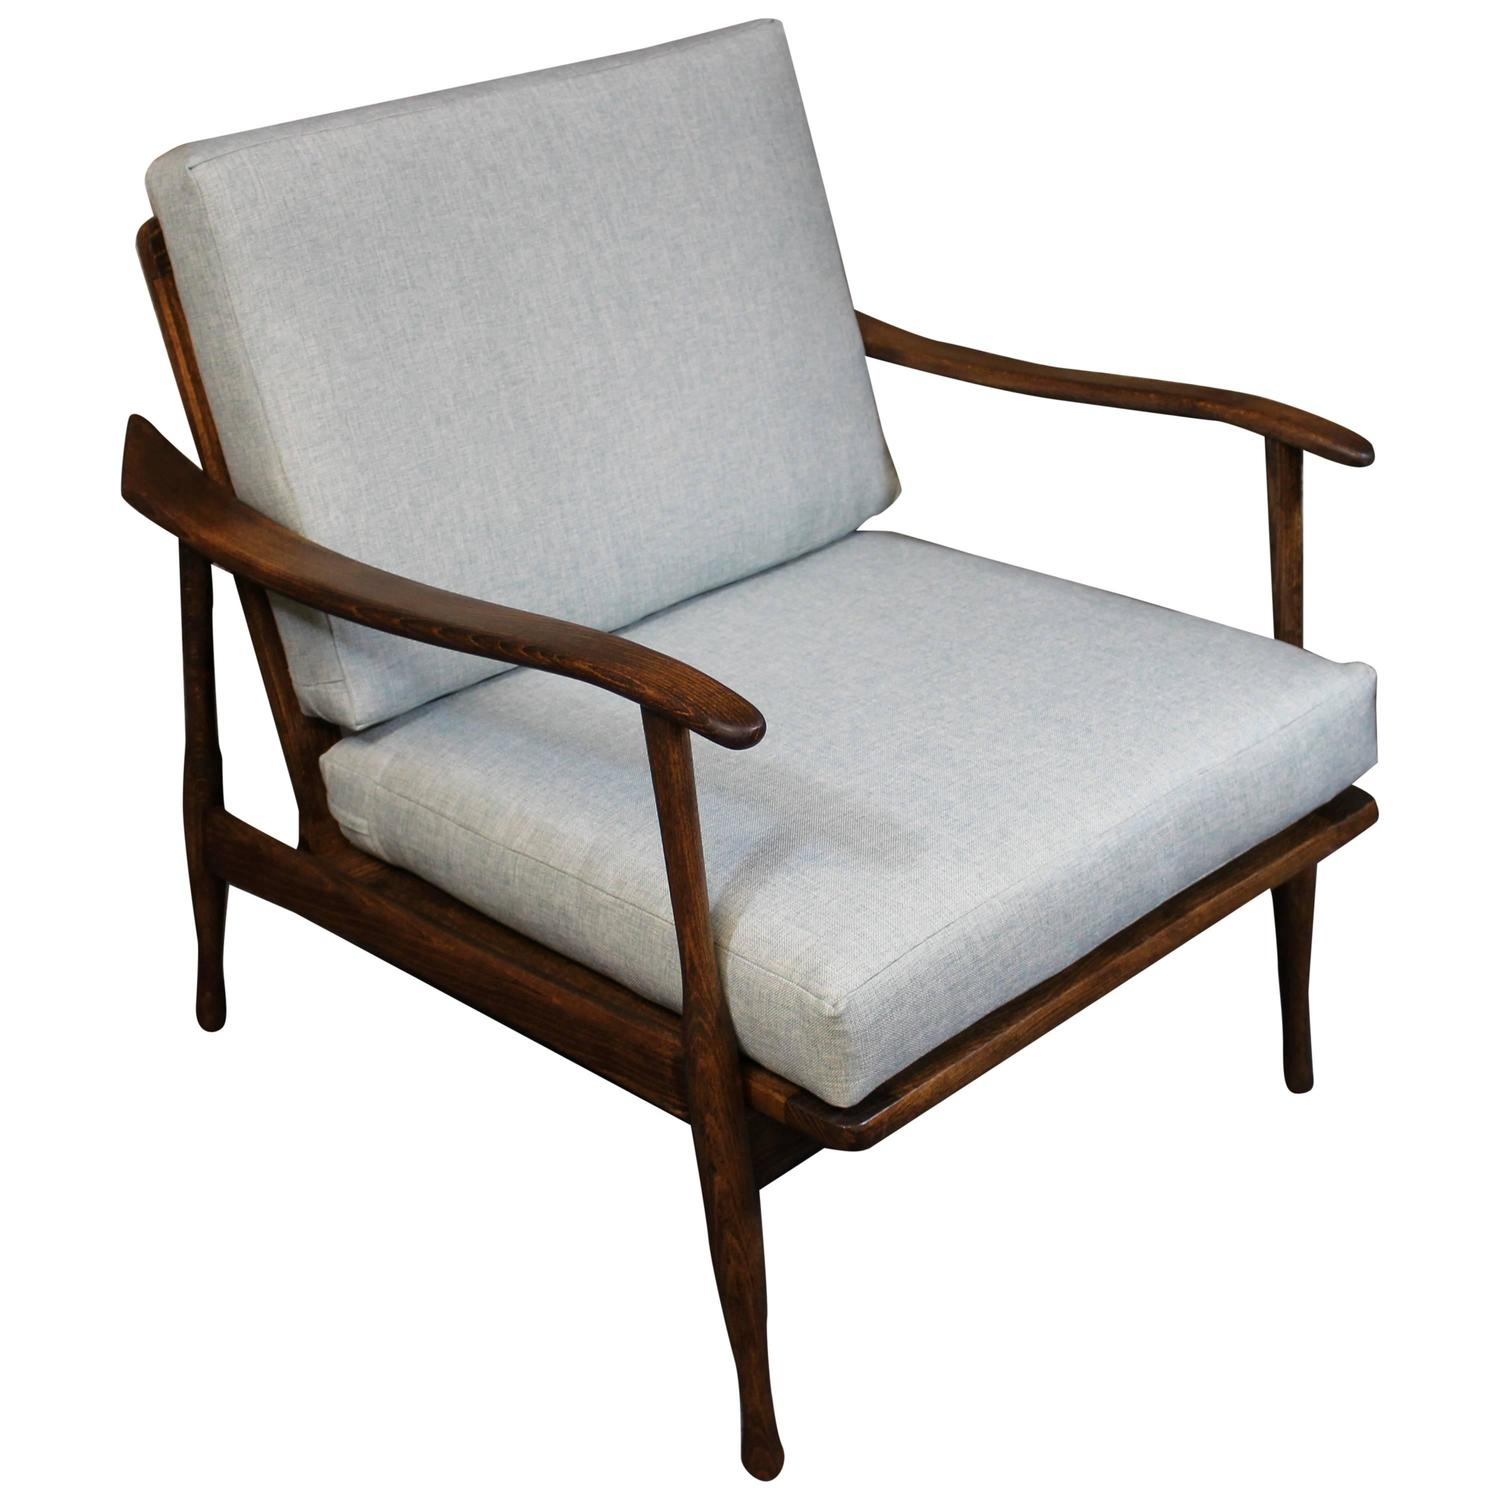 Mid century modern lounge chair at 1stdibs for Stylish lounge furniture